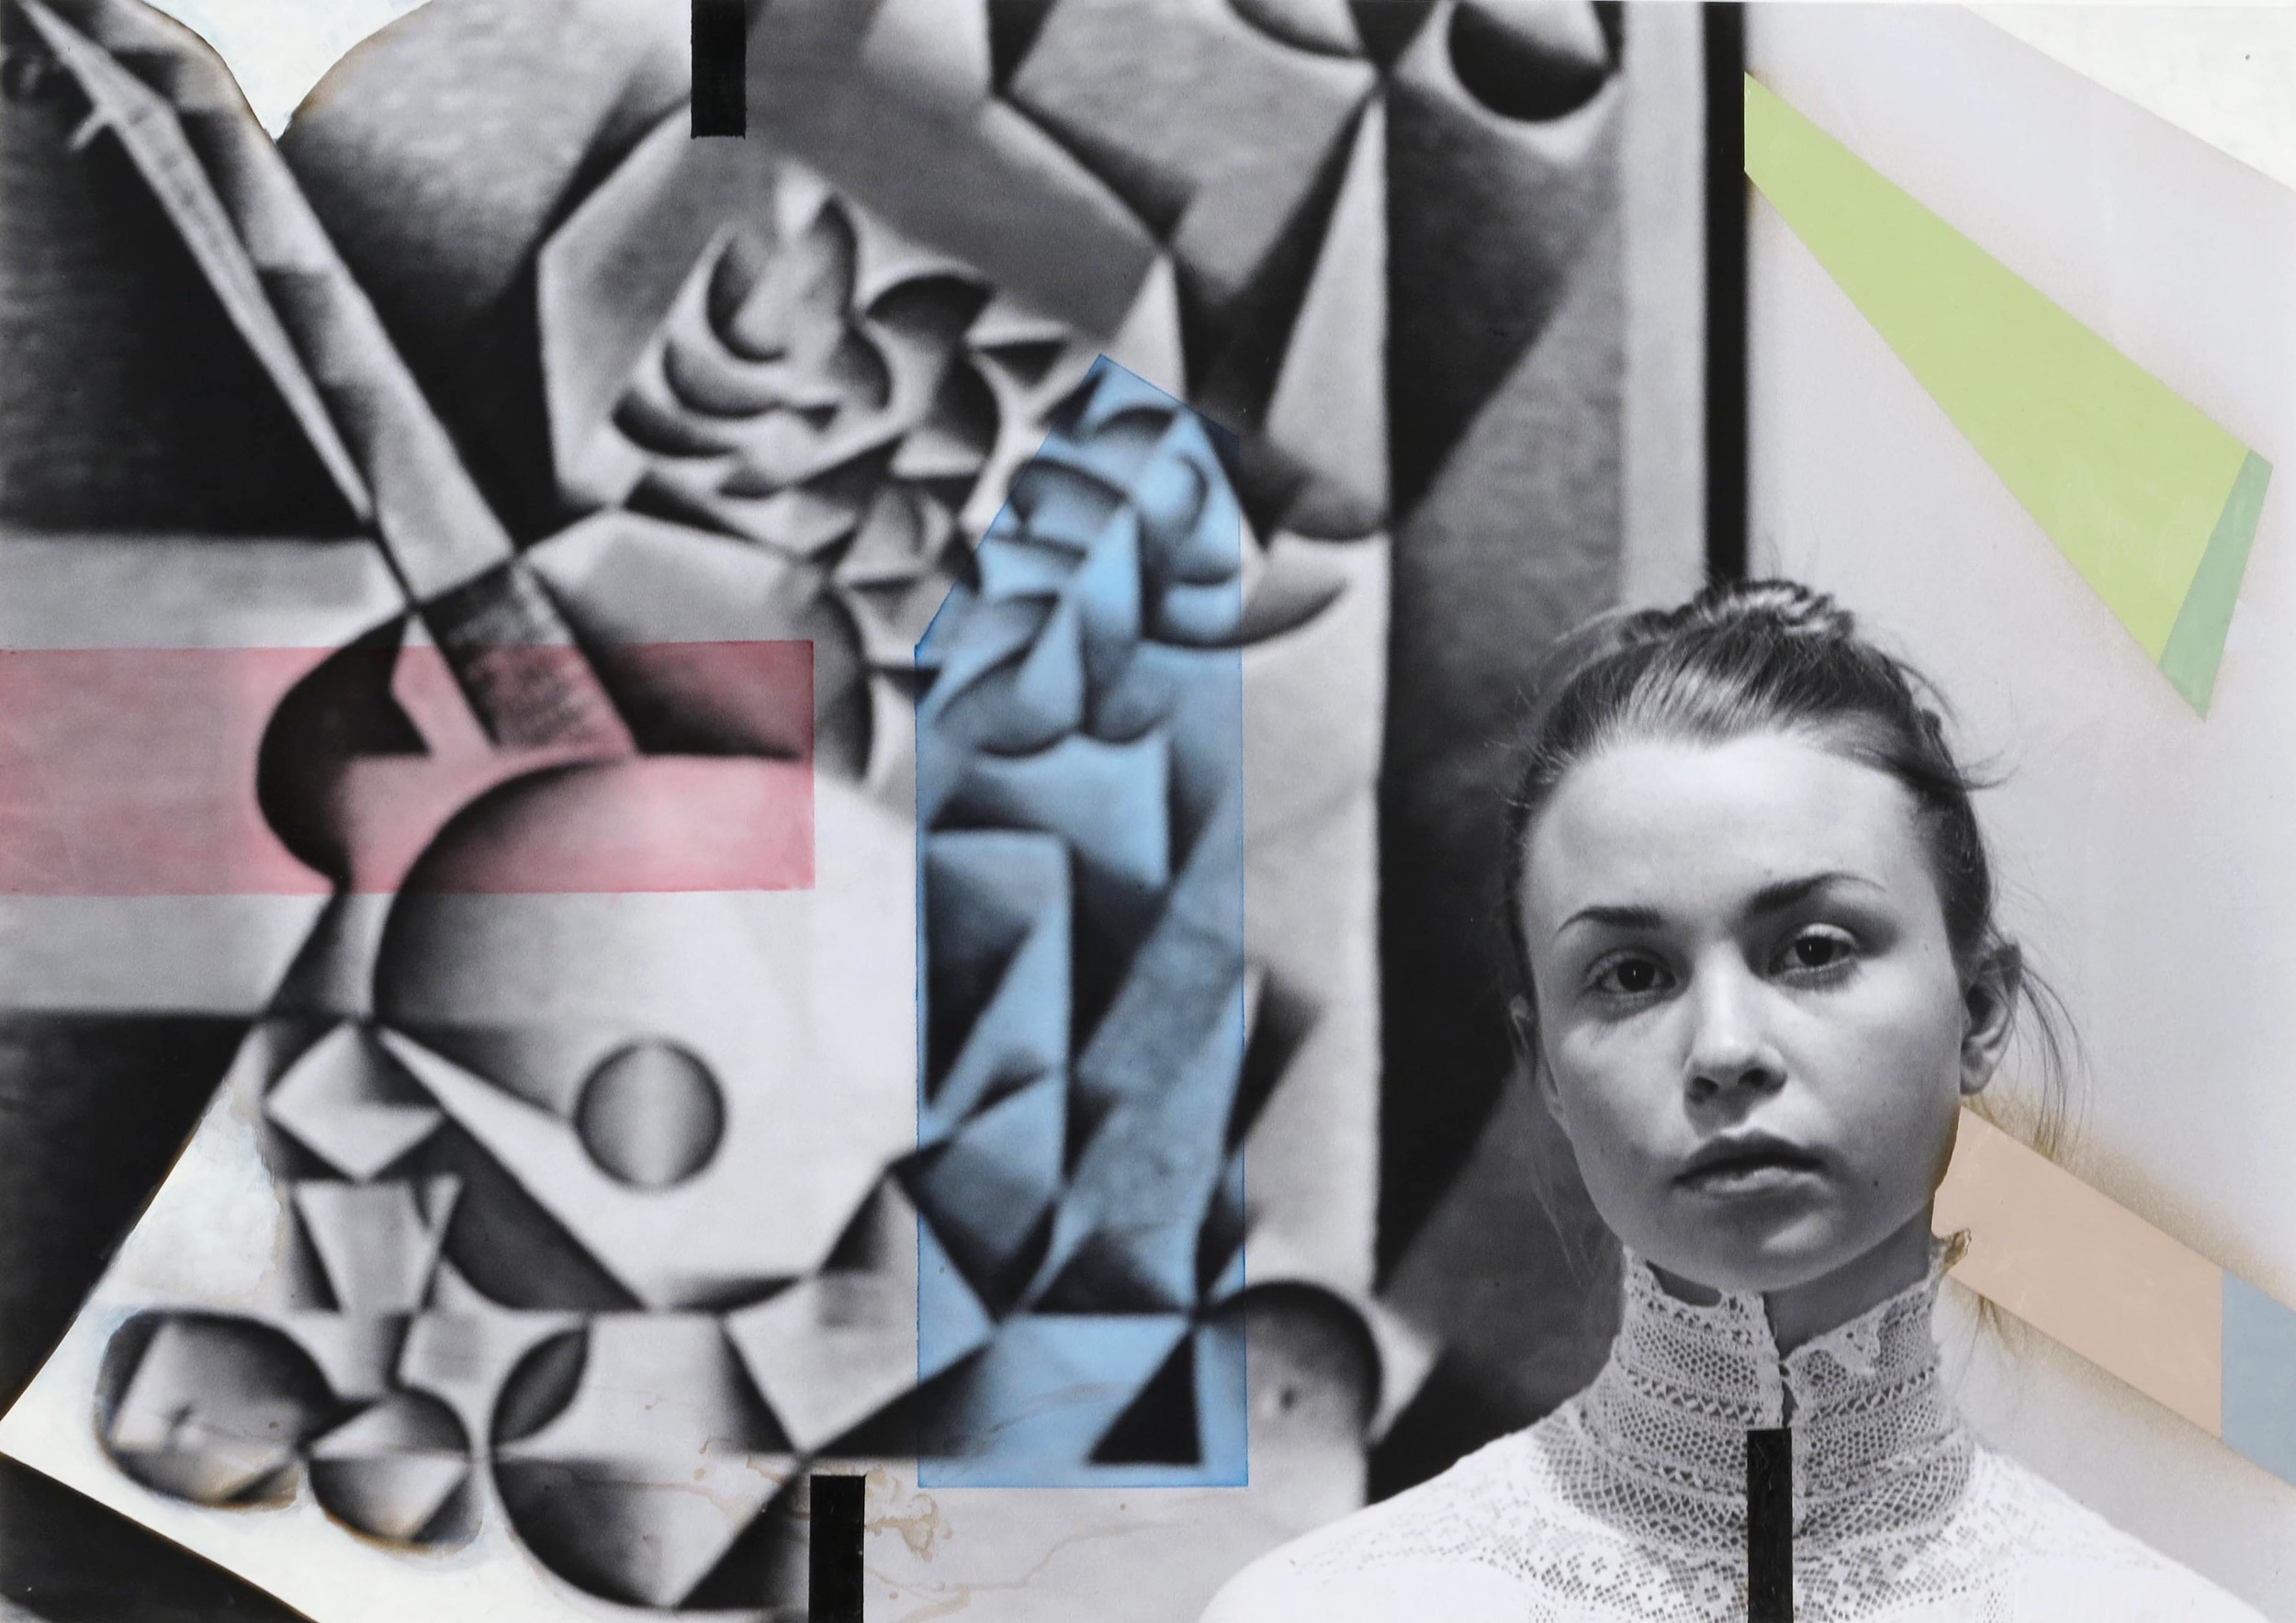 Alexandra in her Cubist Phase  2012  oil paint on gelatin silver print  24 x 34 inches